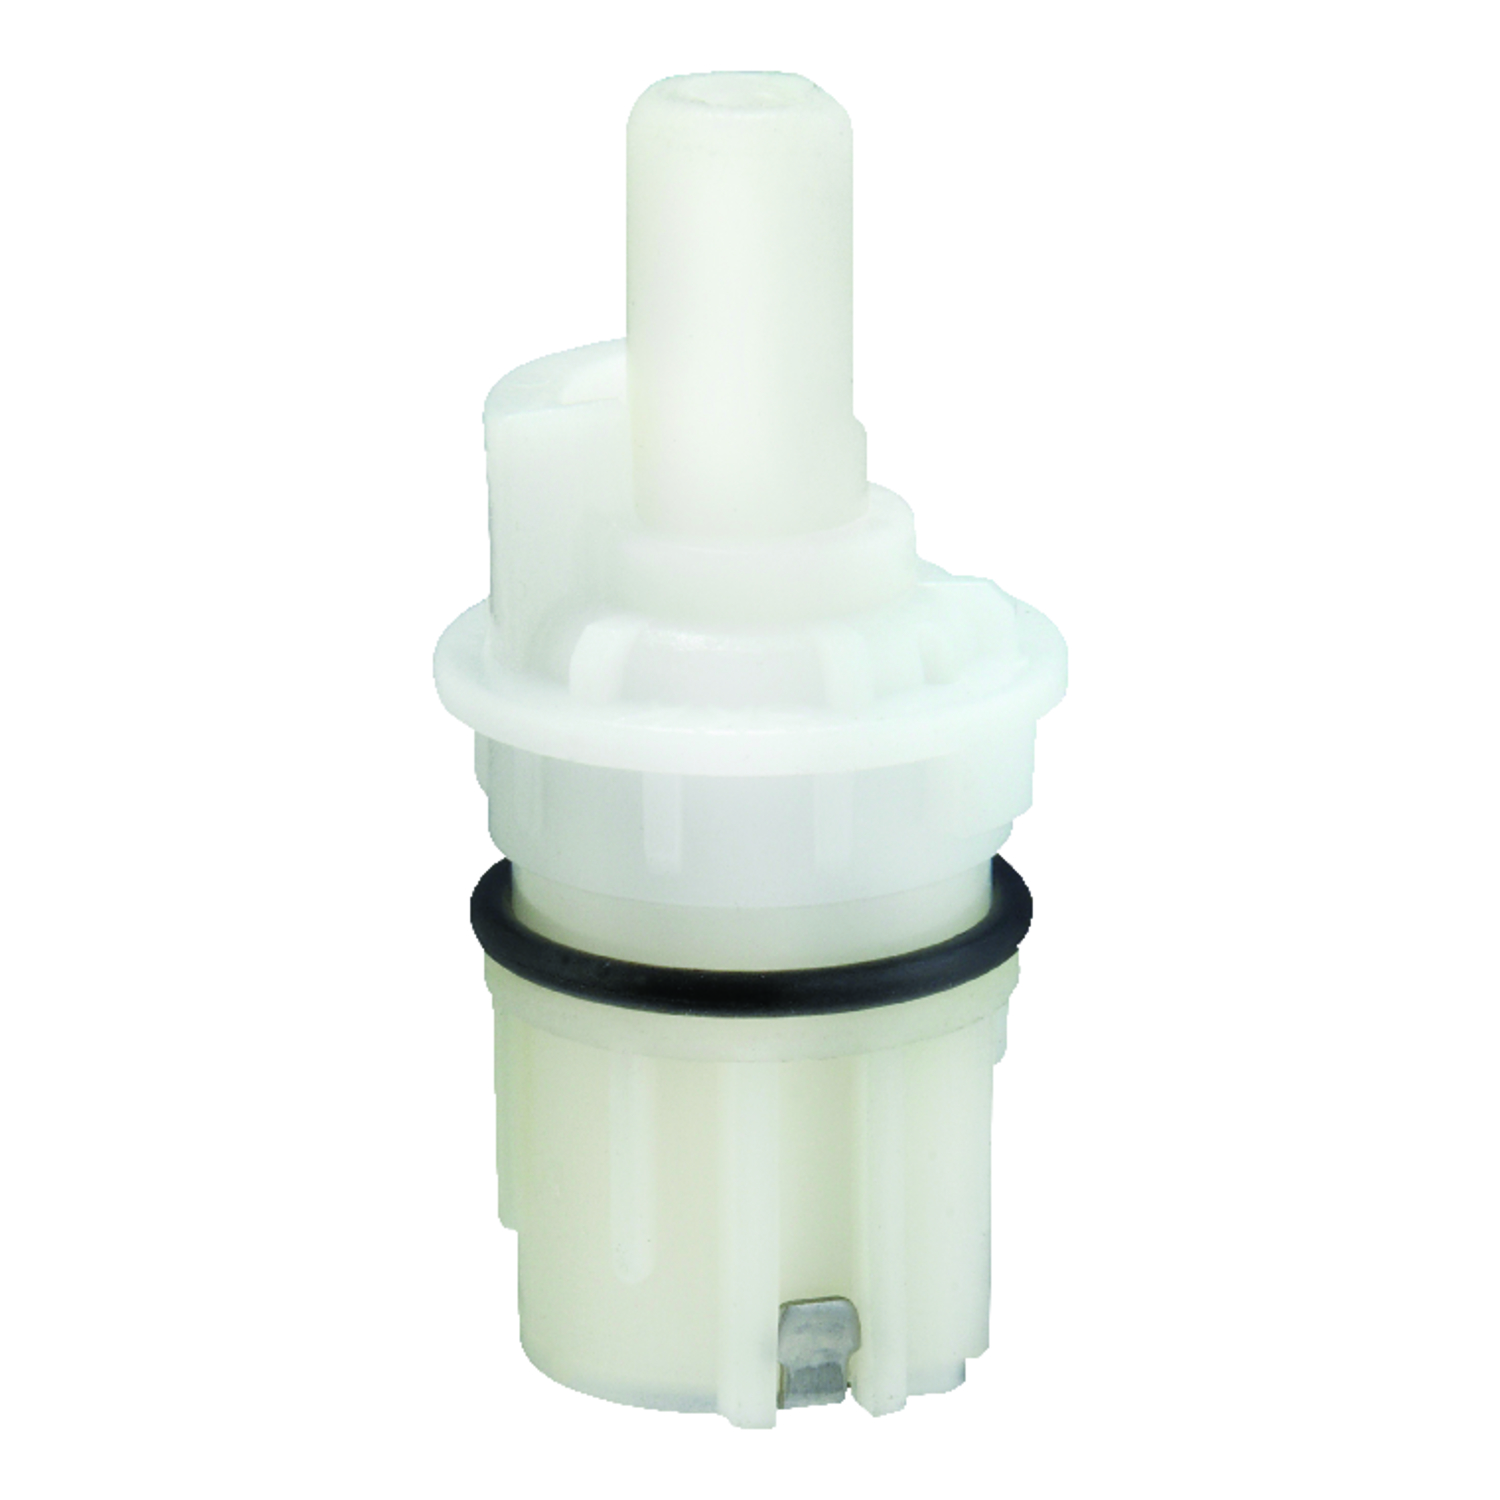 Ace Hot And Cold 3s 10h C Faucet Stem For Delta Ace Hardware